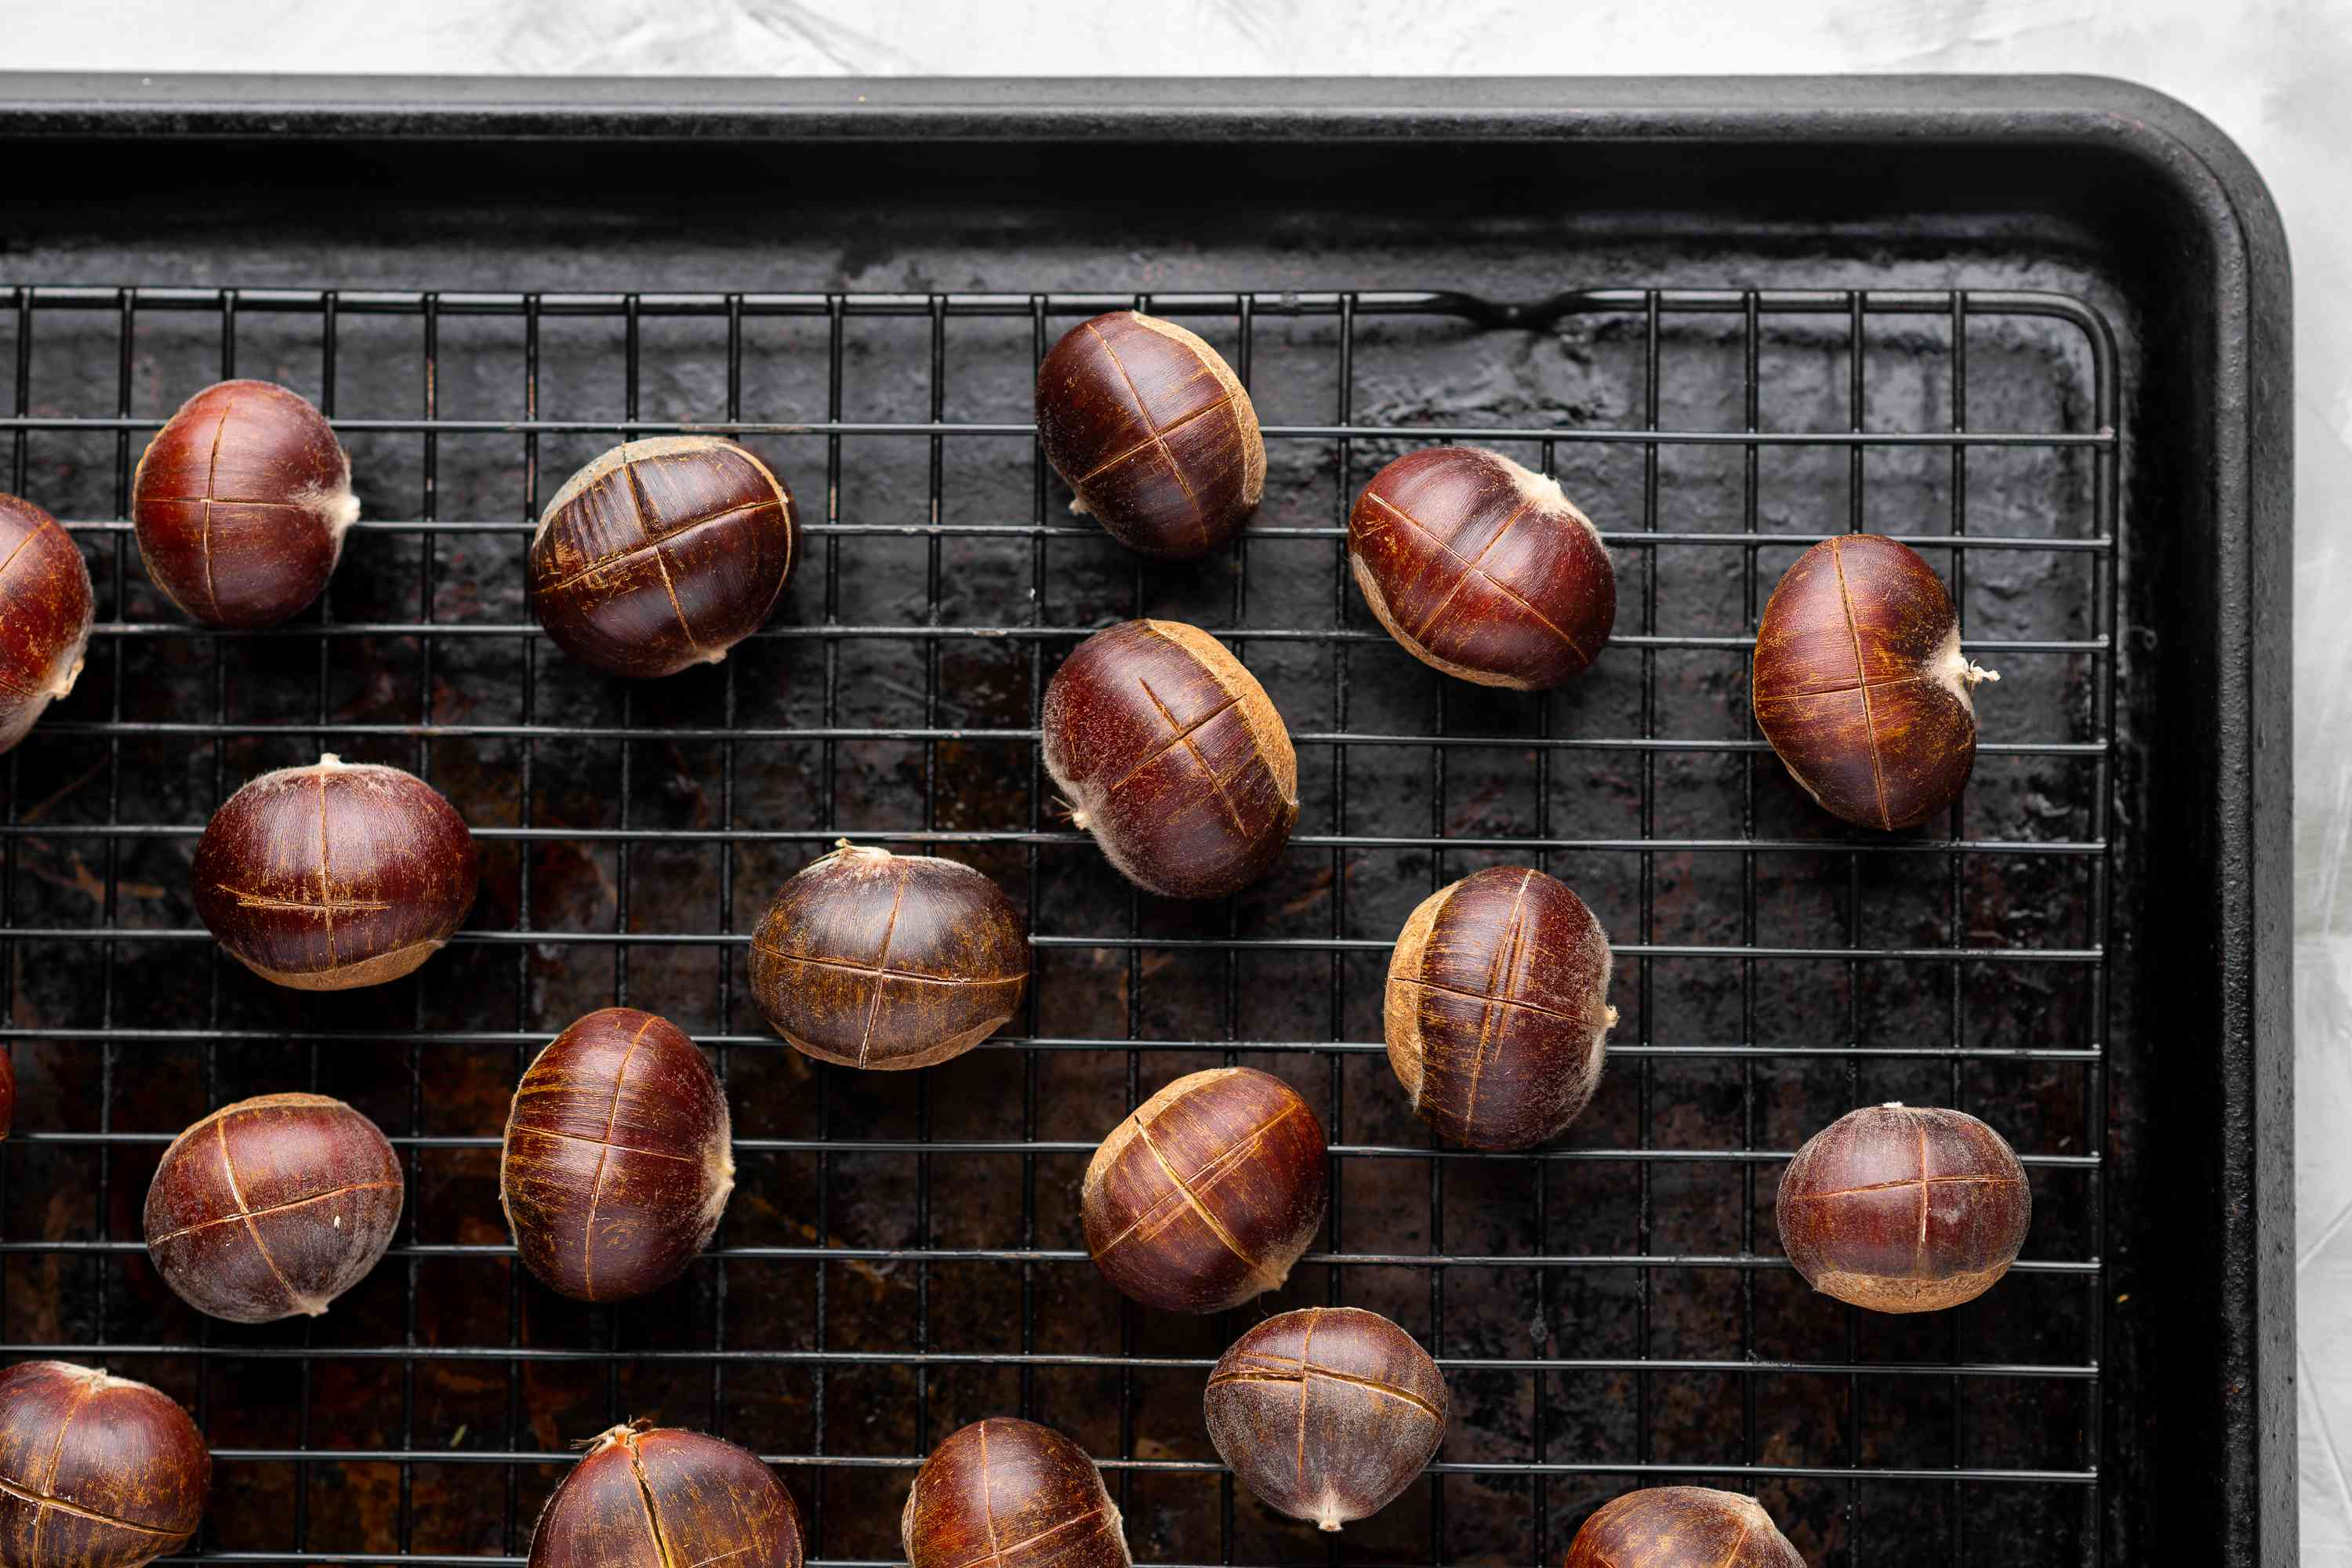 The chestnuts are placed on a baking sheet